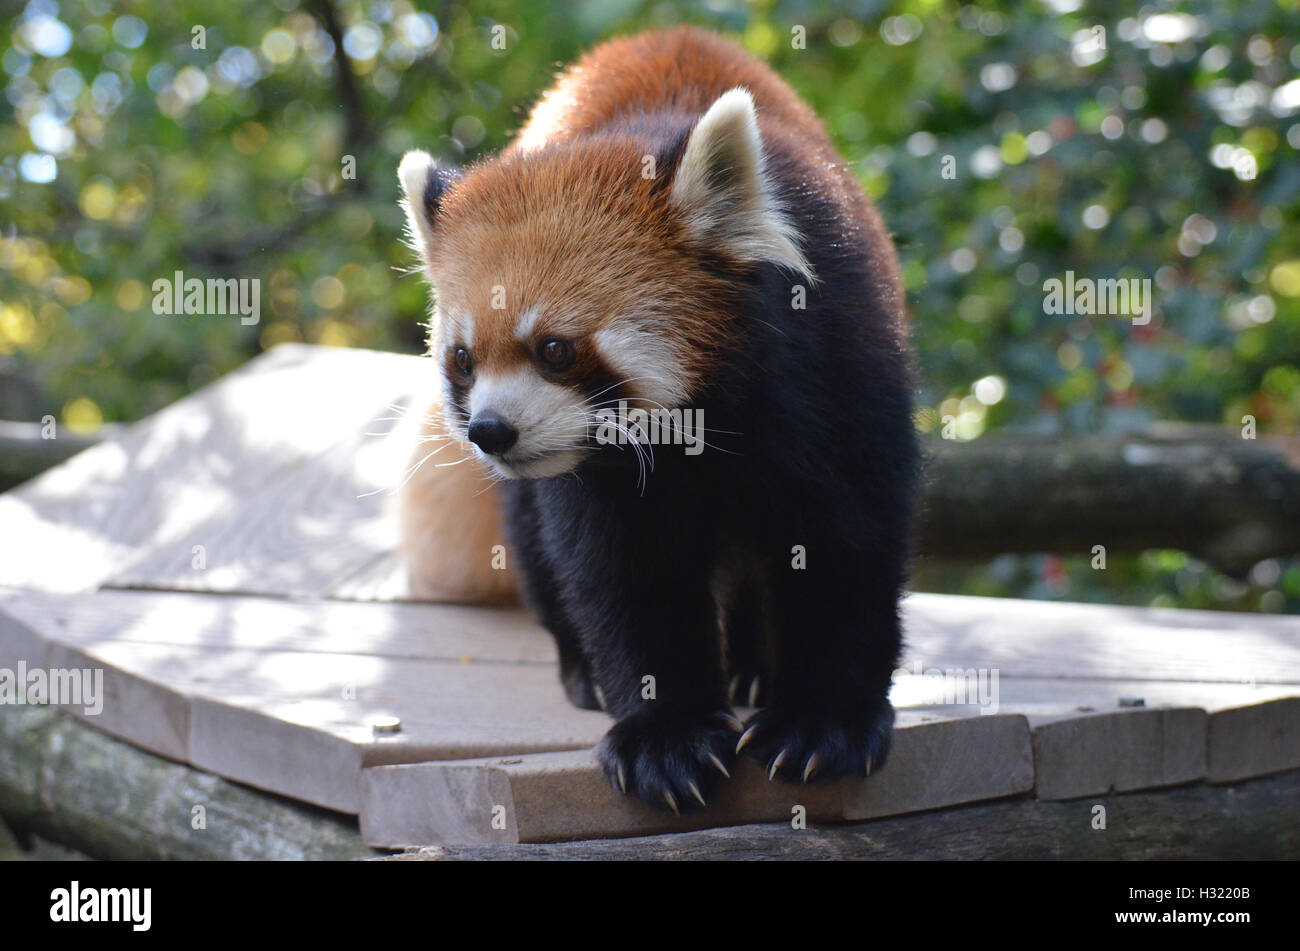 Cute lesser panda bear with very long claws. - Stock Image